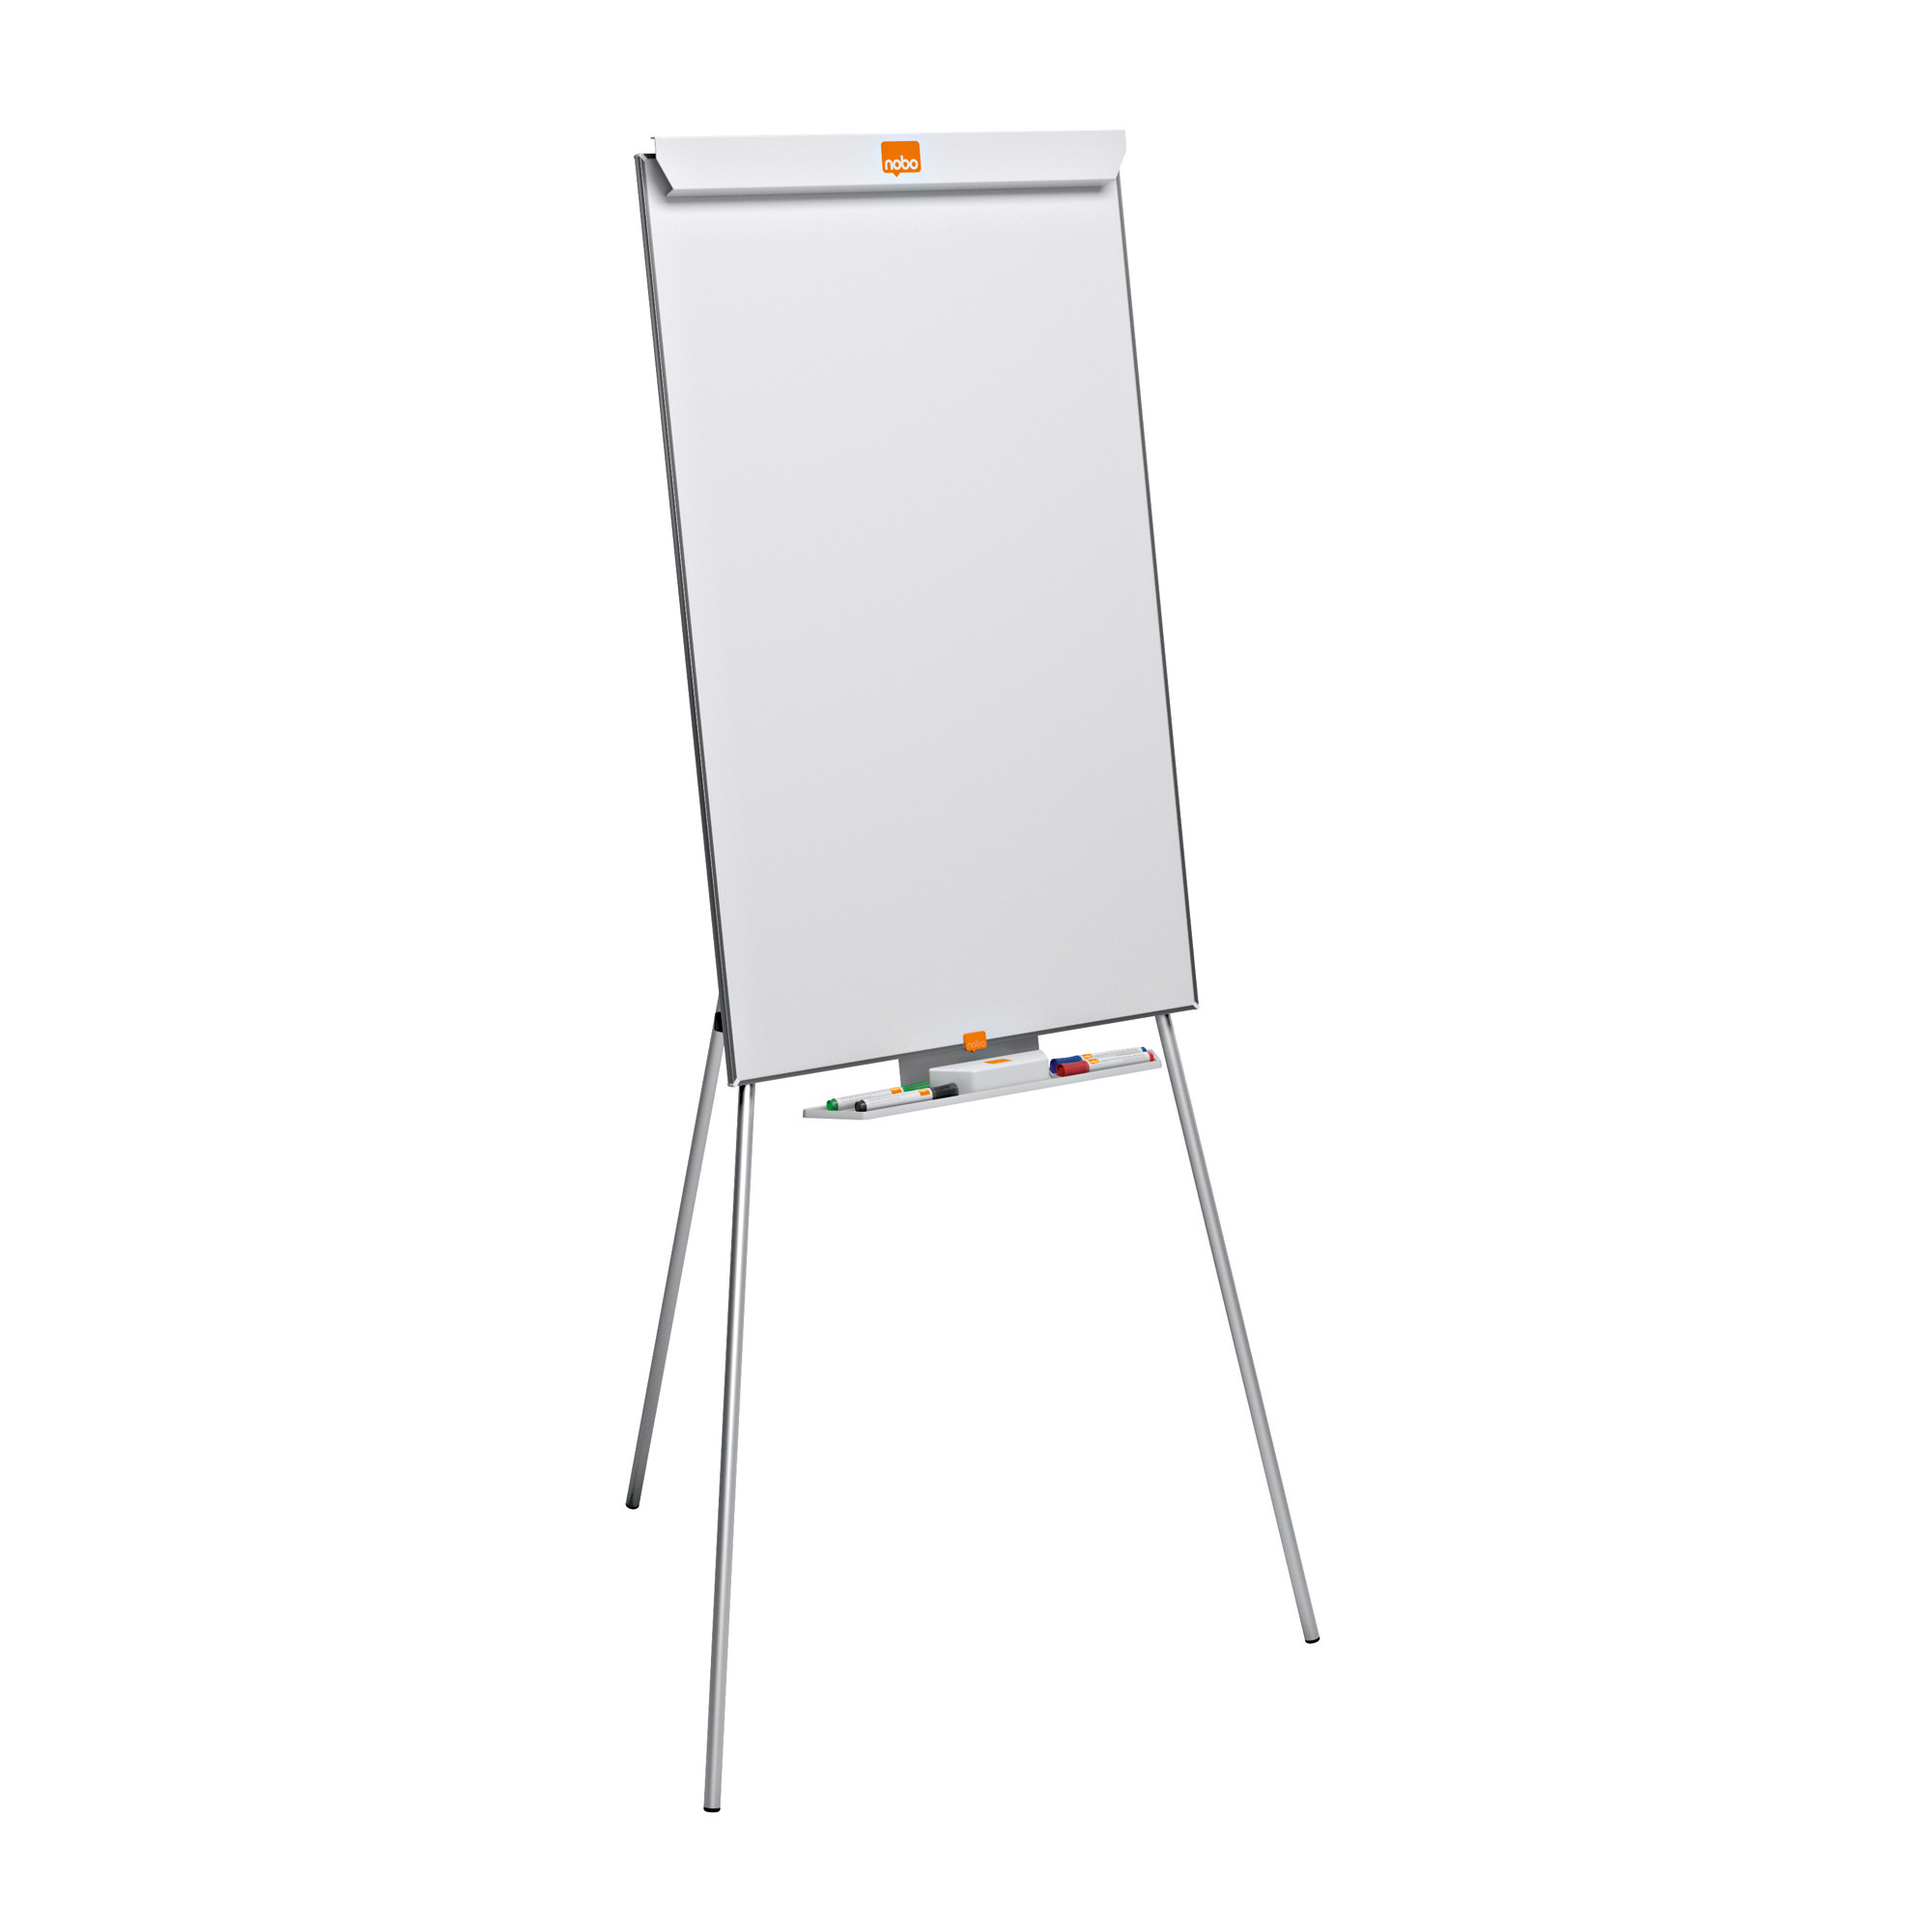 Nobo Classic Melamine Tripod Easel Height-adjustable Non-magnetic W904xH582mm White Ref 1905241